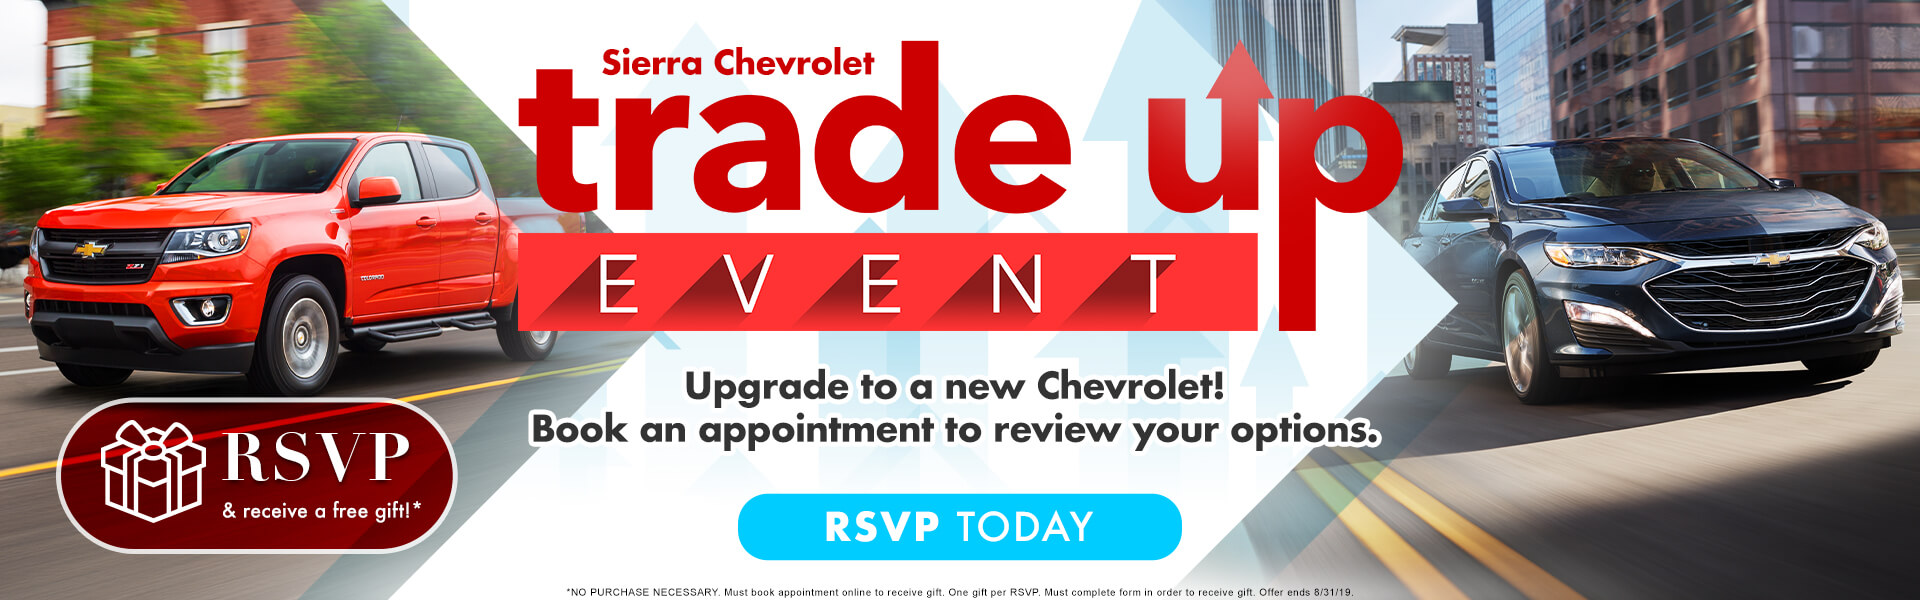 Sierra Chevrolet Trade Up Event